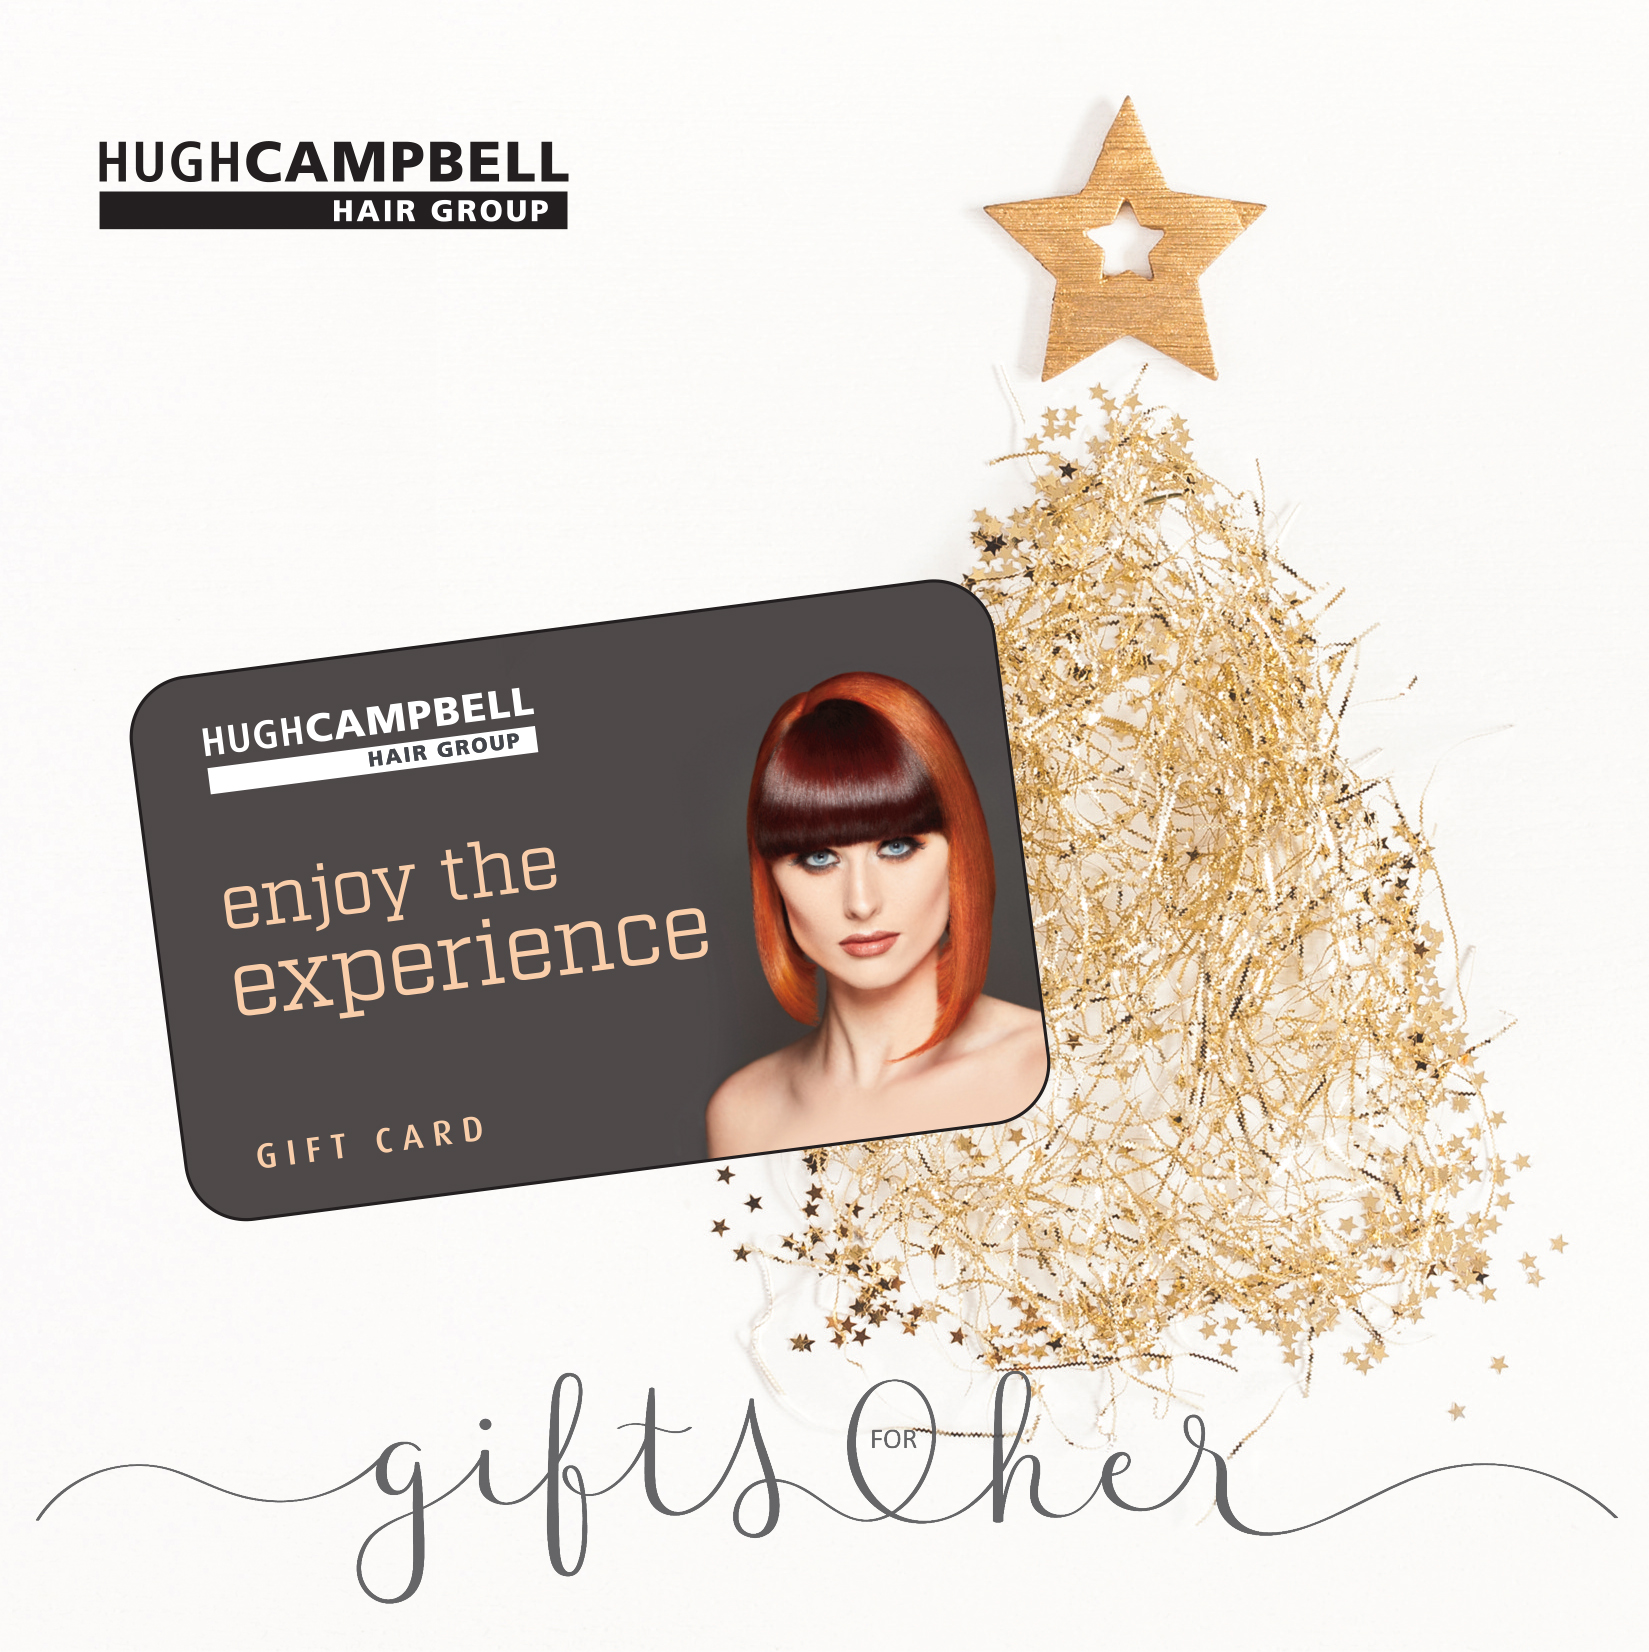 Hugh Campbell Hair Group Limerick Gift Cards available online